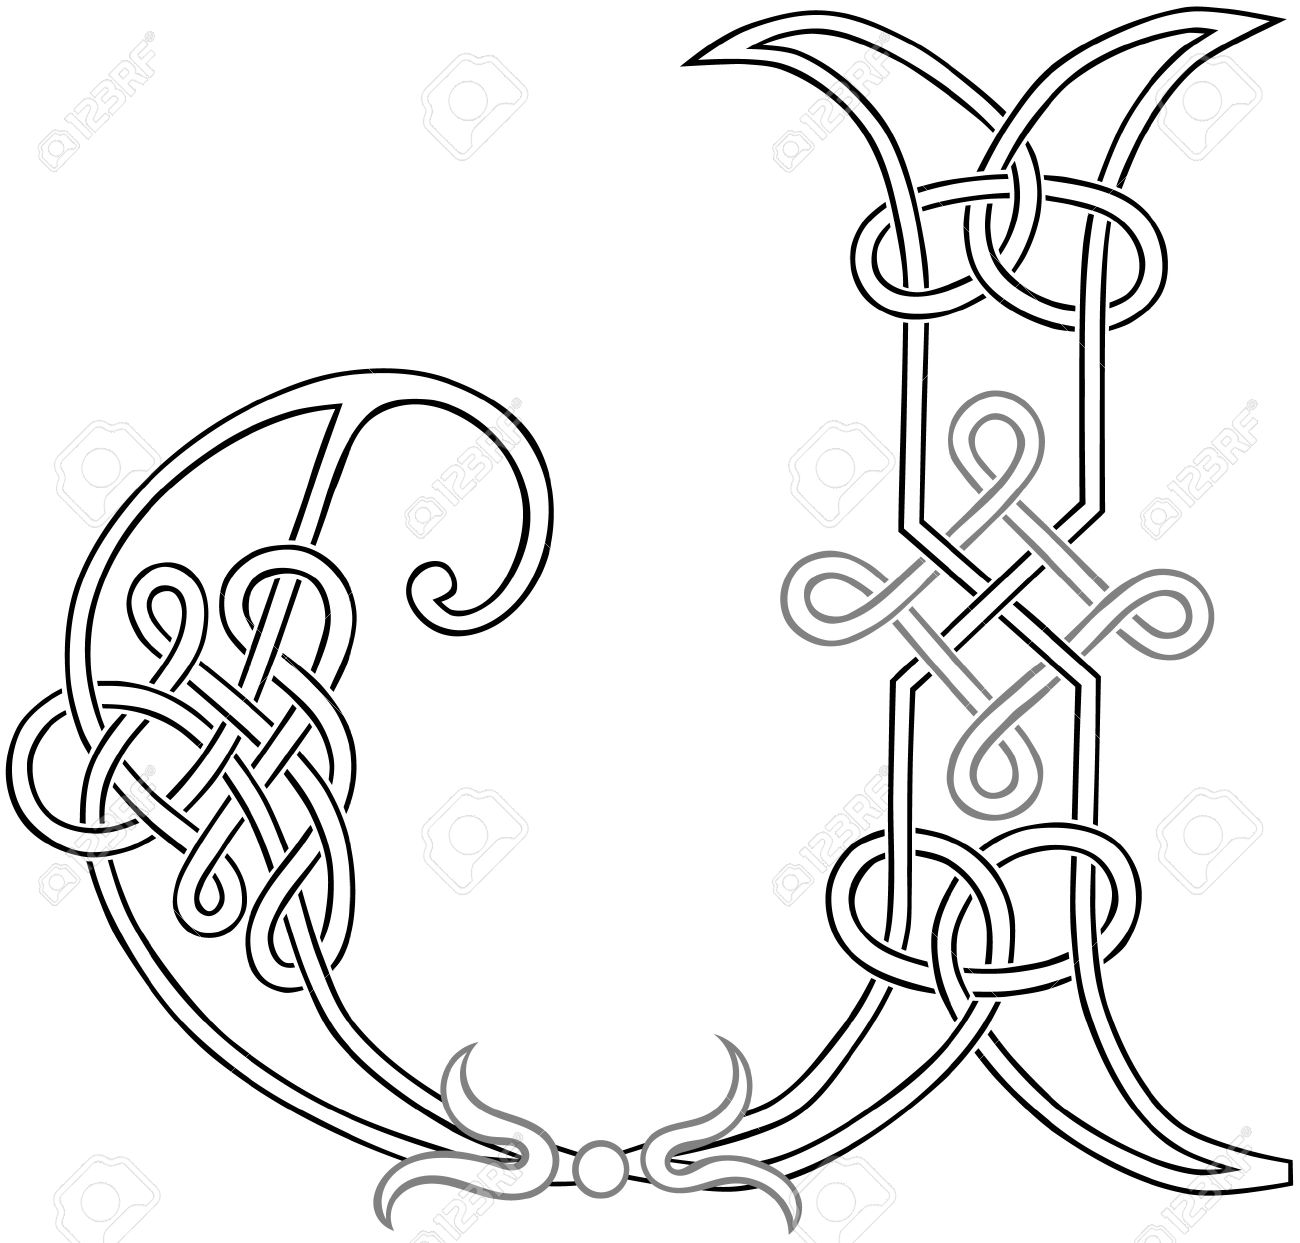 A Celtic Knot Work Capital Letter J Stylized Outline Royalty Free